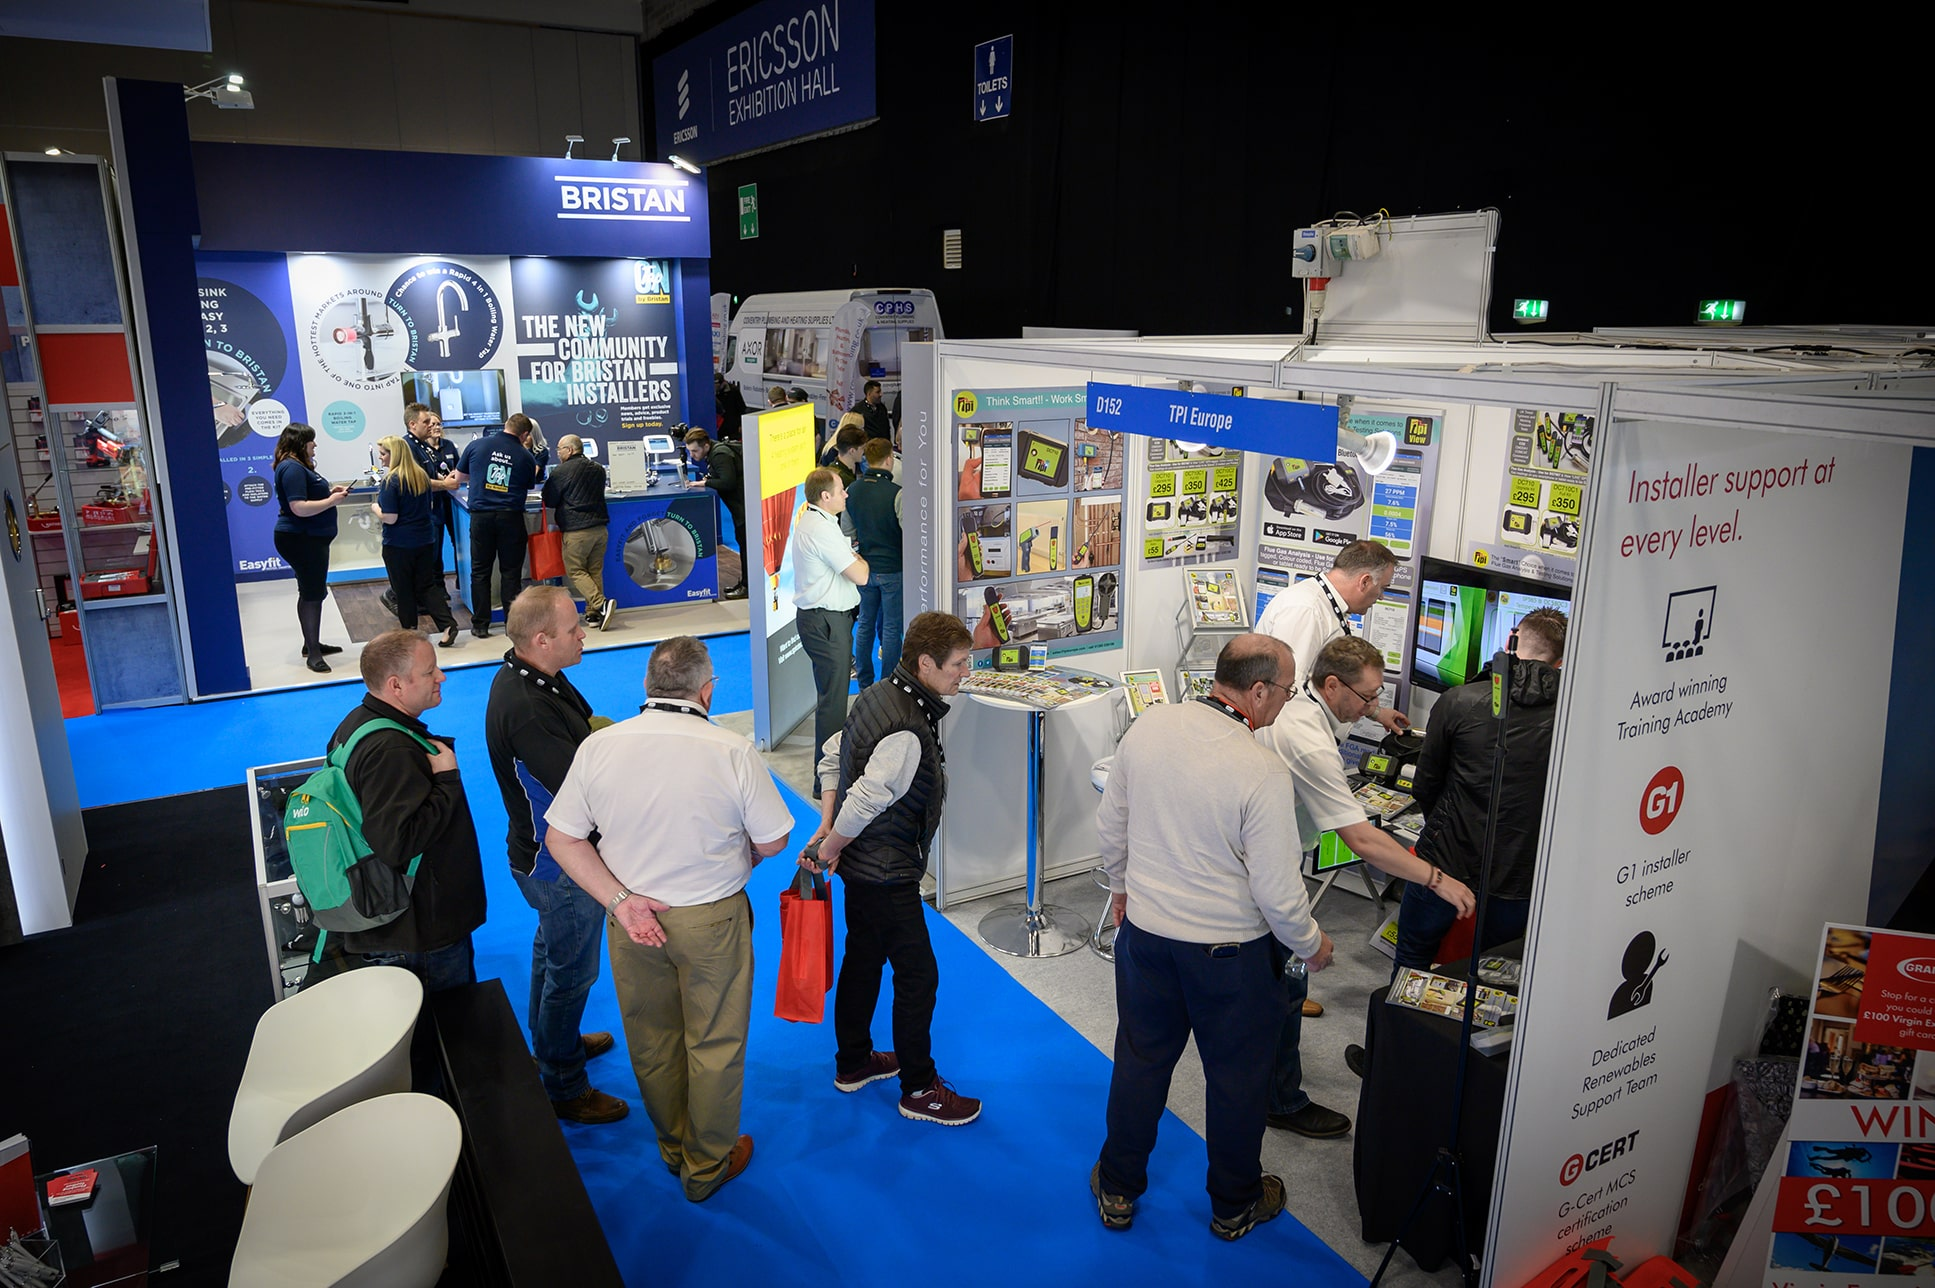 Former England football star to speak at national trade show in Coventry - EN - Exhibition News